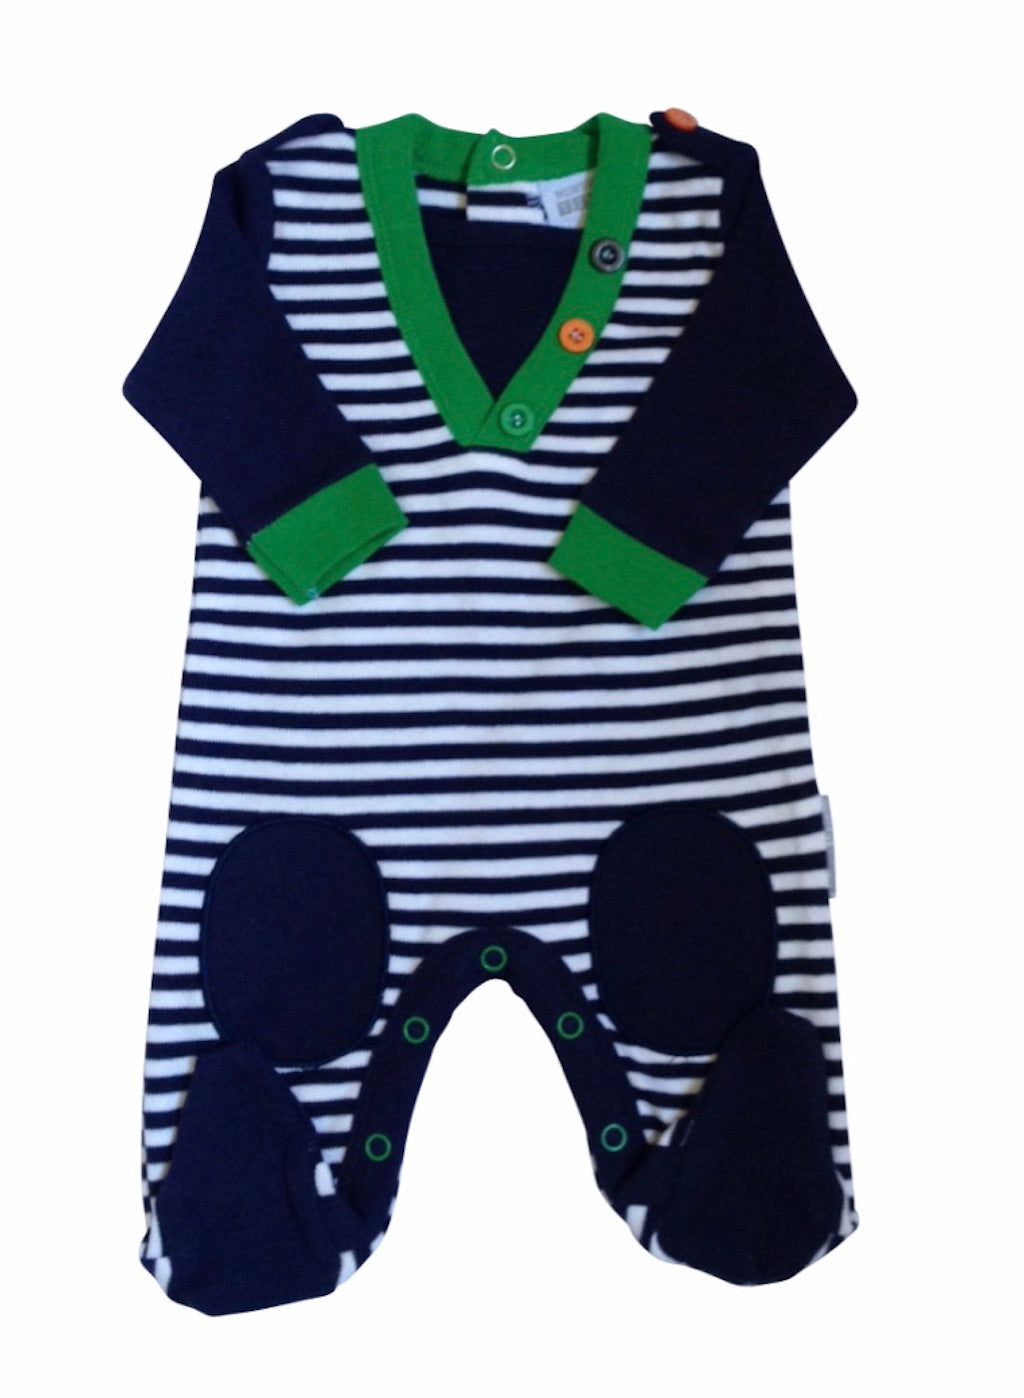 striped baby boy sleepsuit, baby sleep suit, cotton sleepsuit, knee patches, knee patch detail, striped sleepsuit, navy sleepsuit, long sleeve sleepsuit